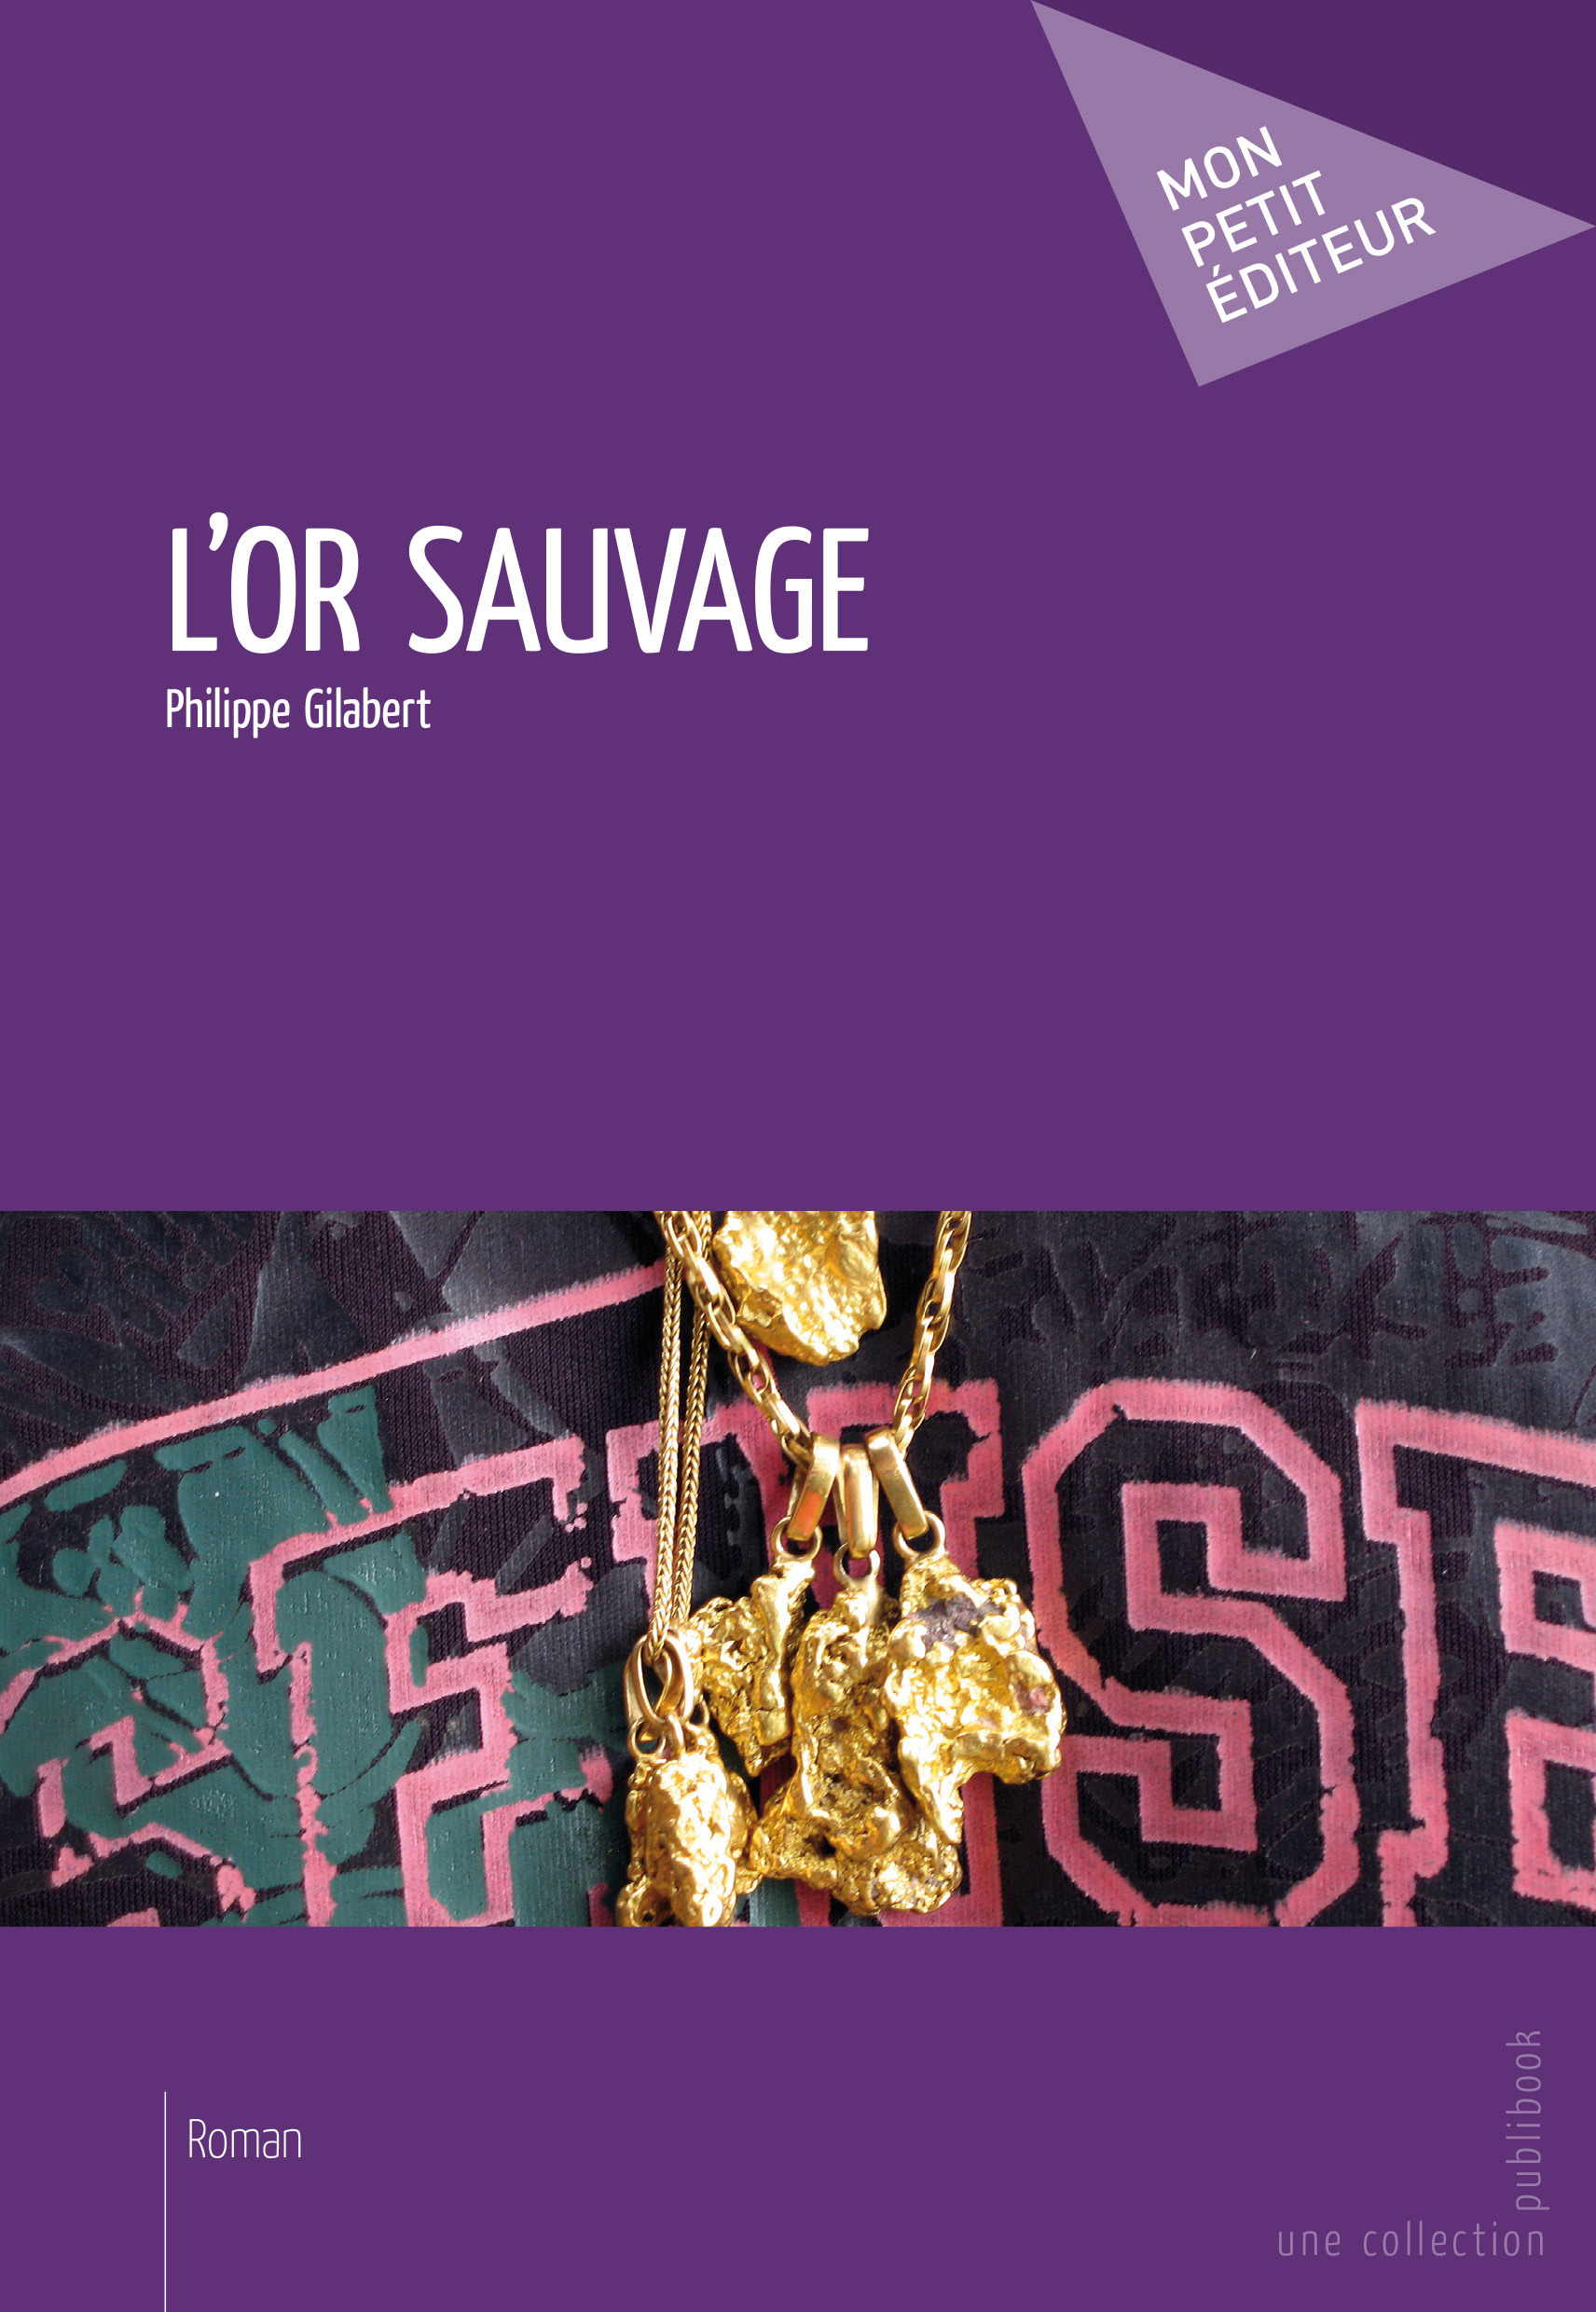 L'or sauvage